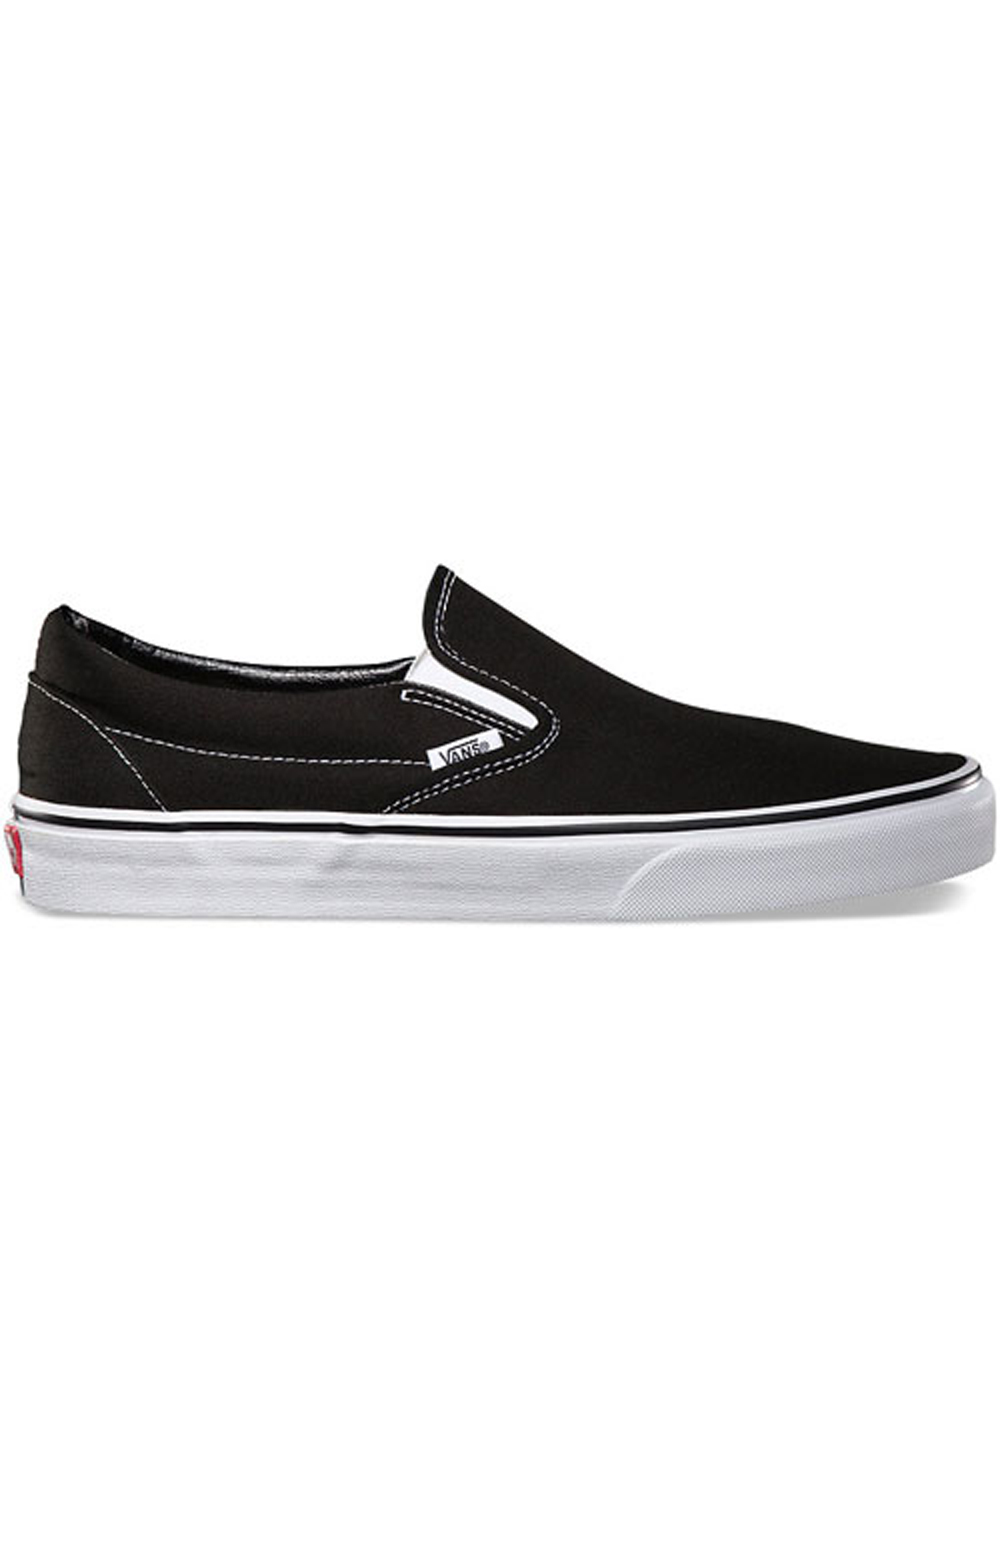 (EYEBLK) Classic Slip-On Shoe - Black